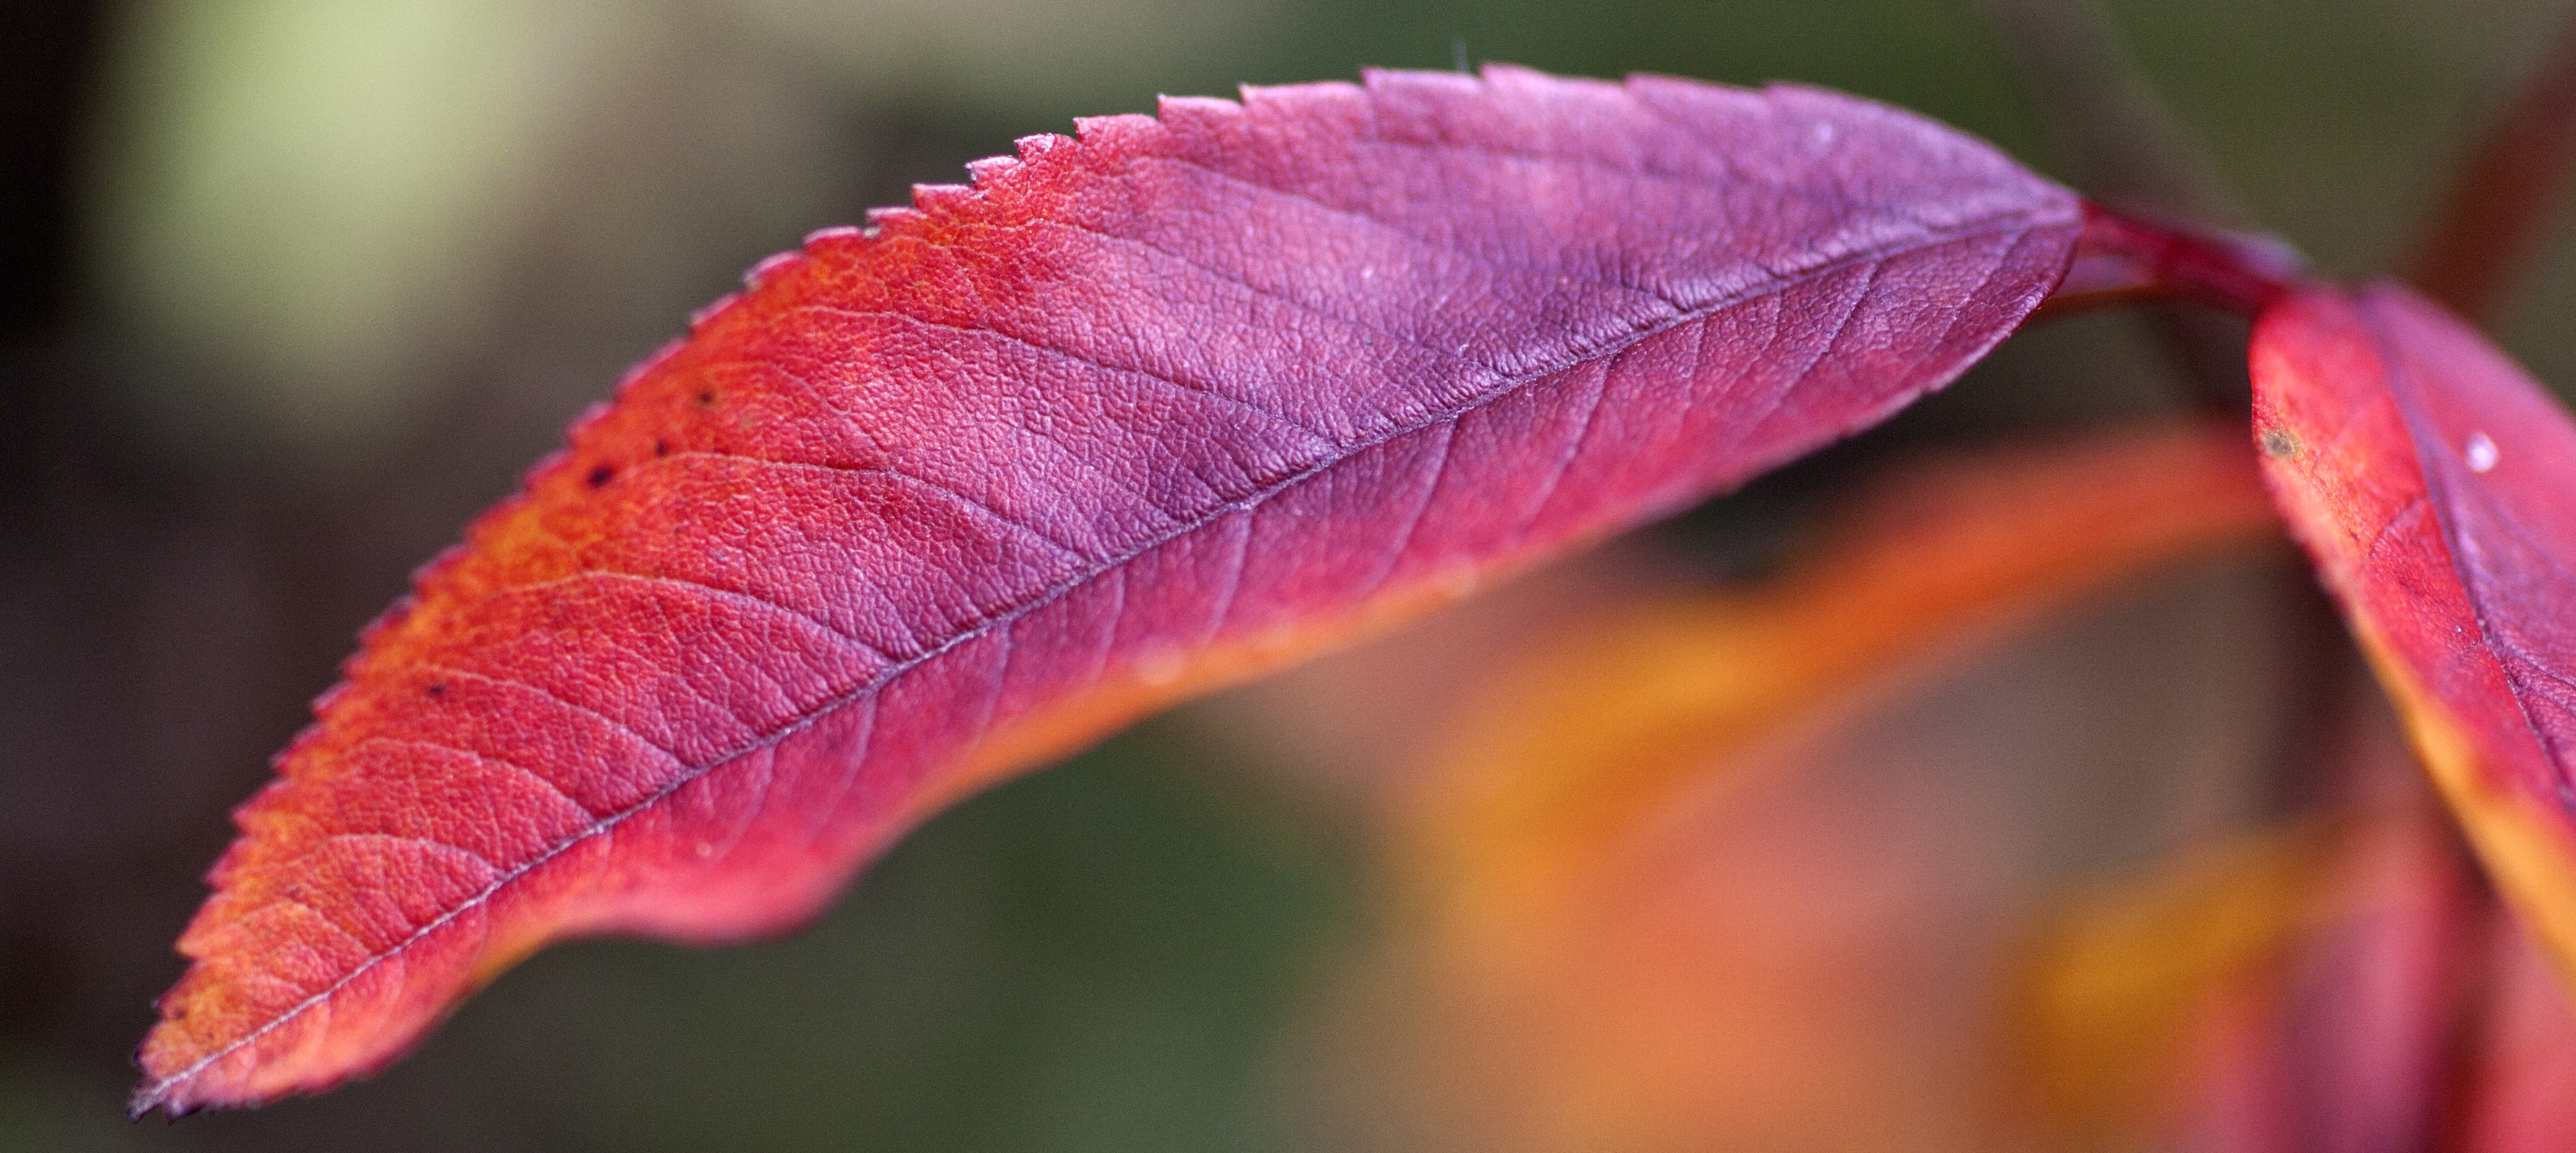 Simple red leaf